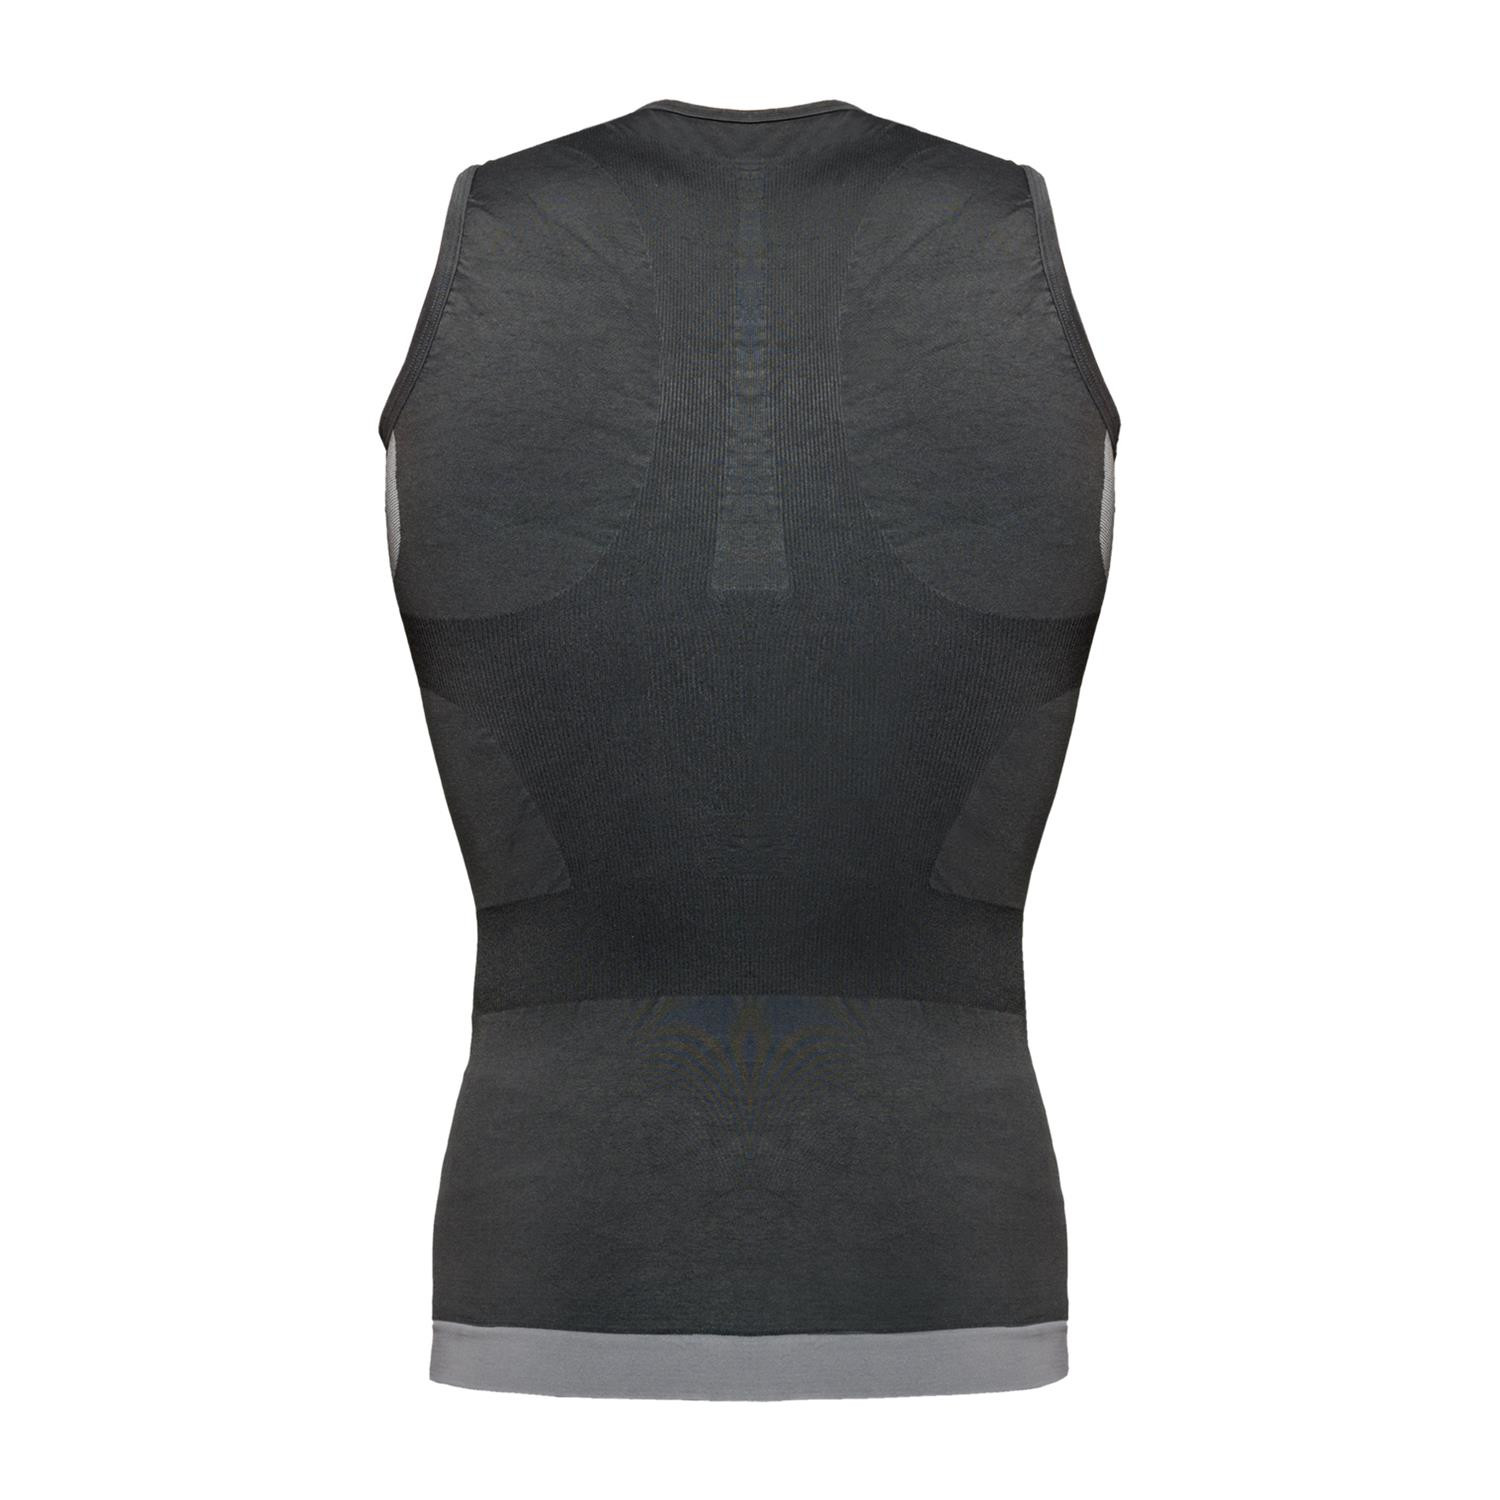 Spring Revolution Ms Sleeveless Postural Shirt